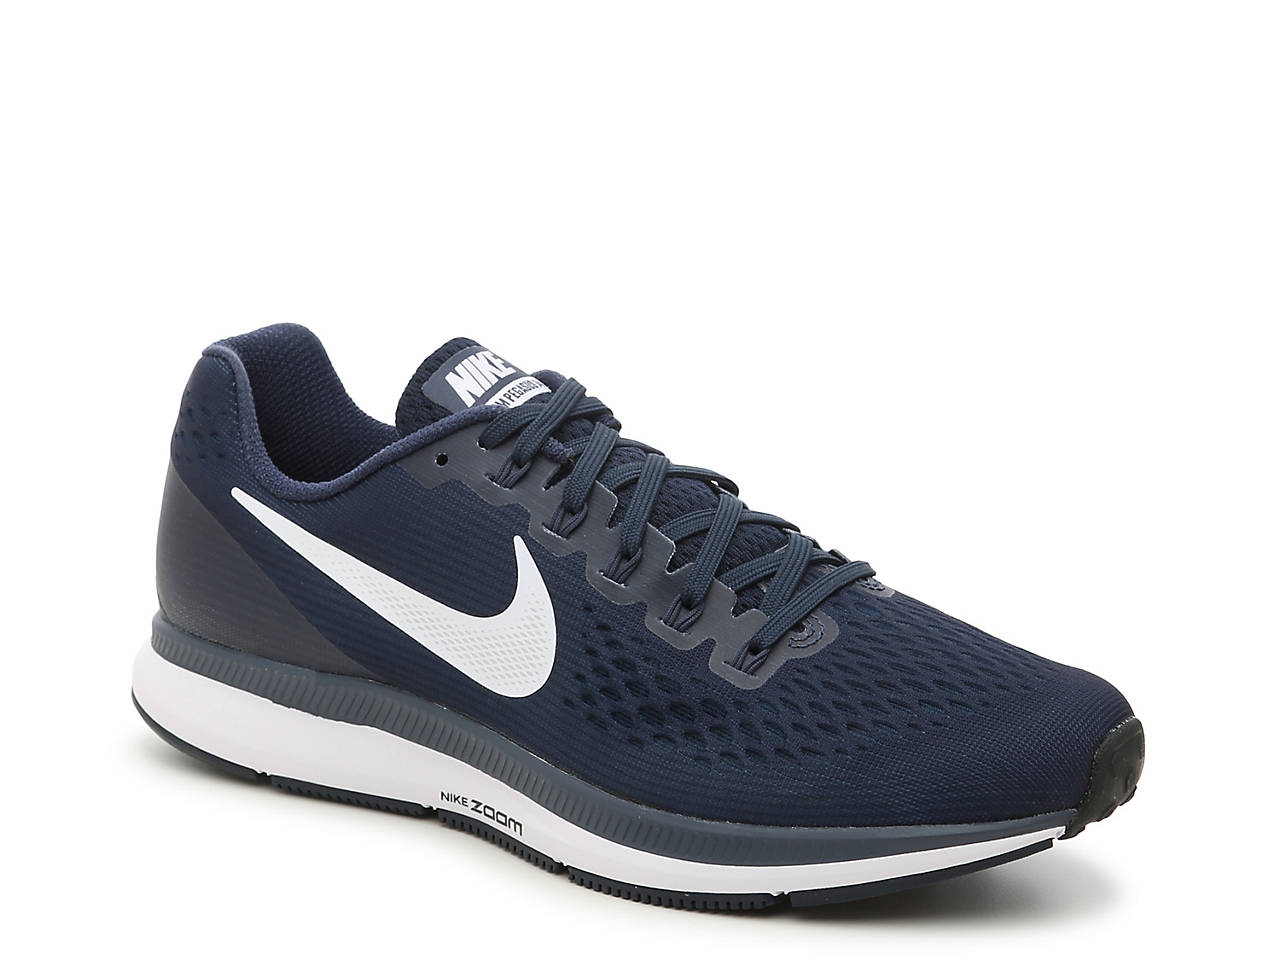 Air Zoom Pegasus 34 Running Shoe - Men's